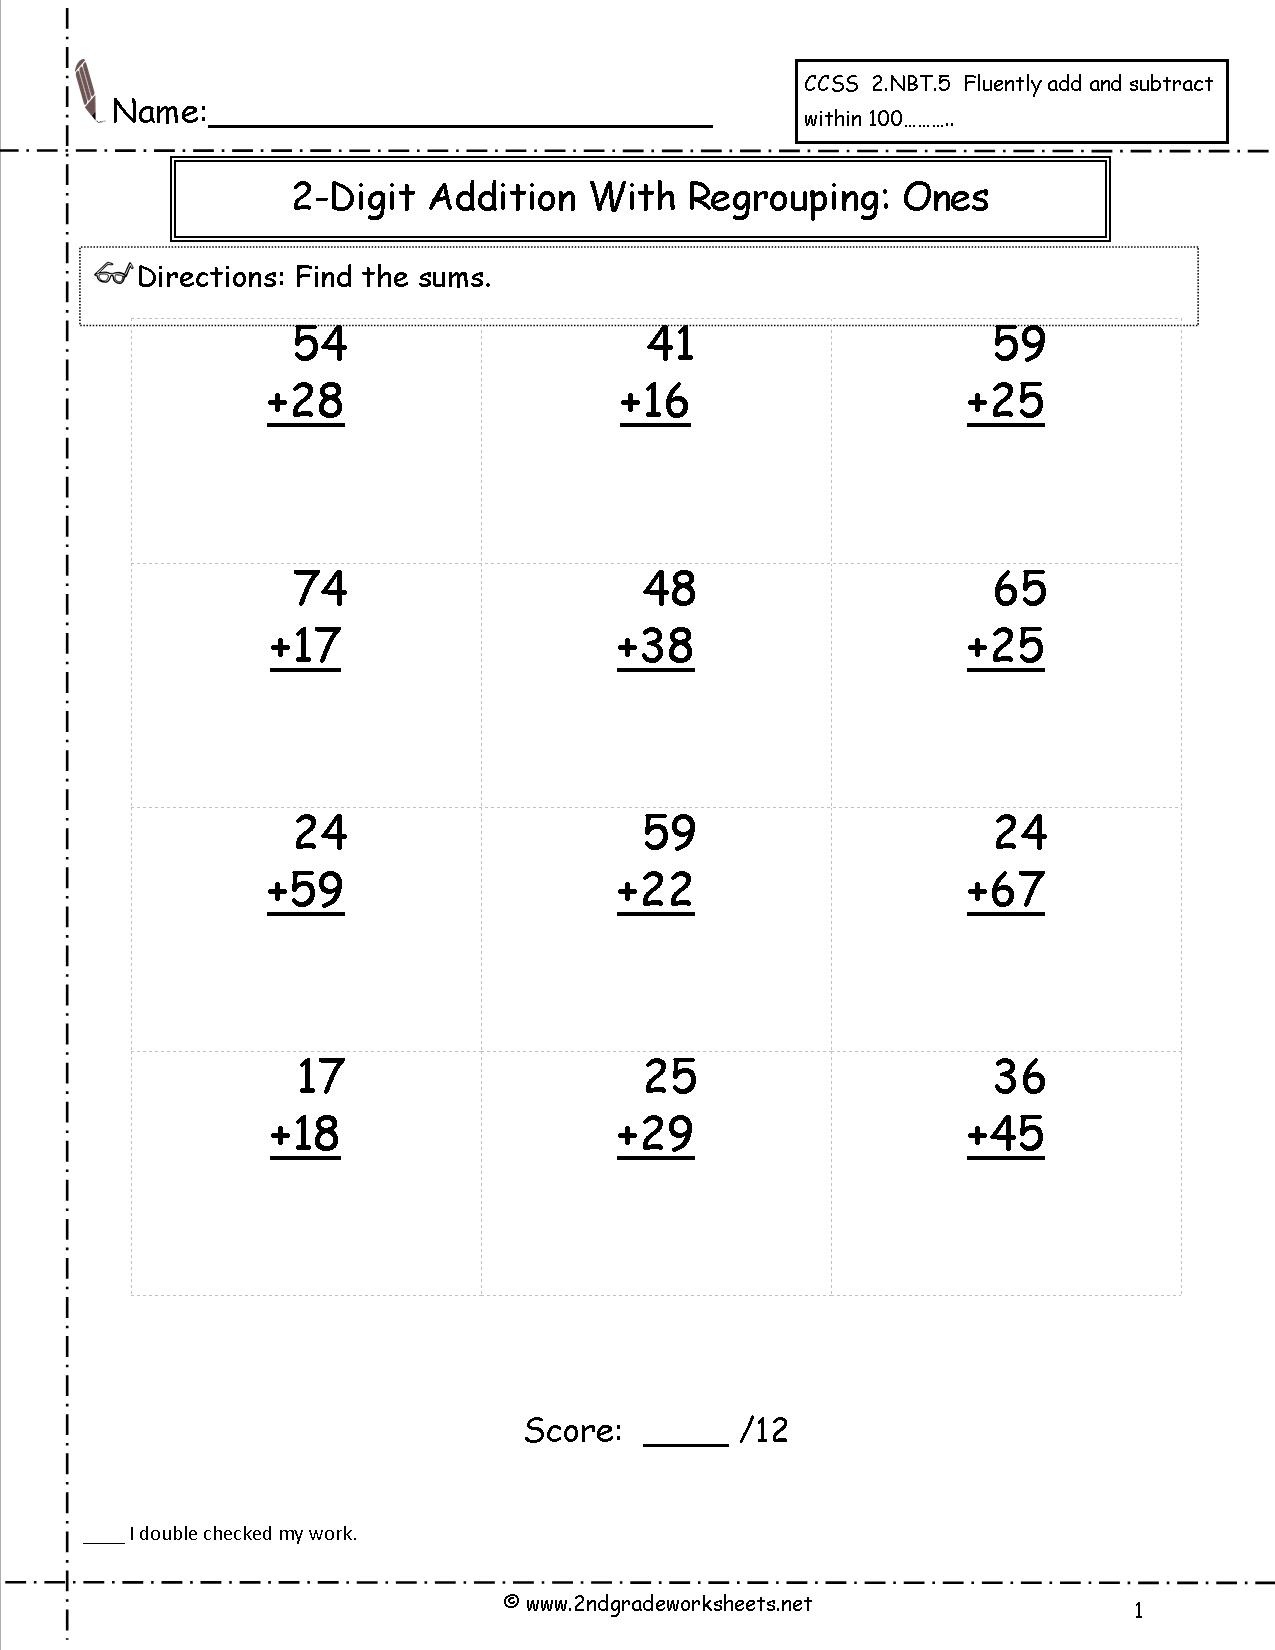 Two Digit Addition Worksheets - Free Printable Two Digit Addition Worksheets